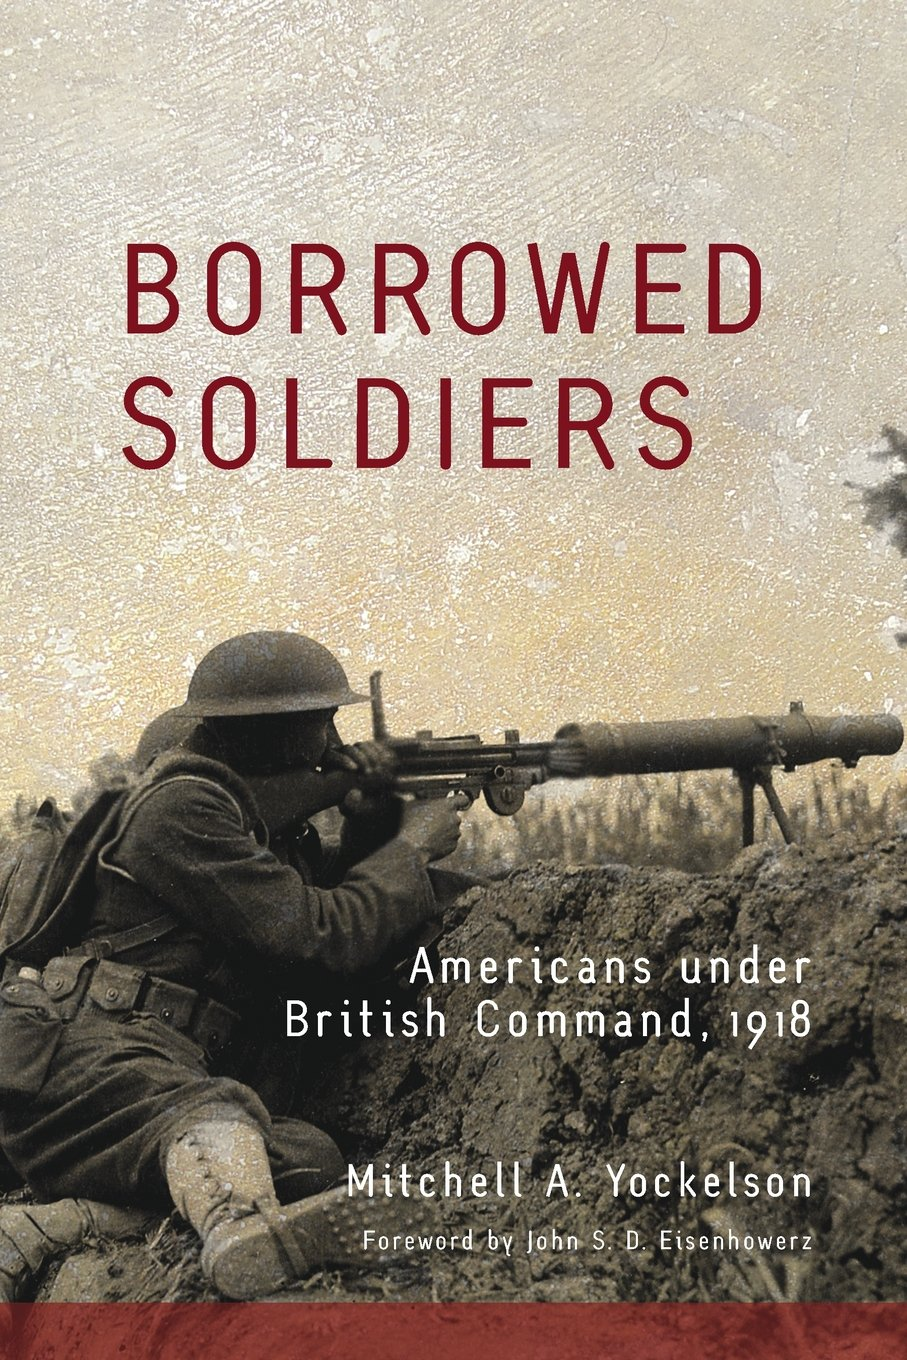 Download Borrowed Soldiers: Americans under British Command, 1918 (Campaigns and Commanders Series) PDF